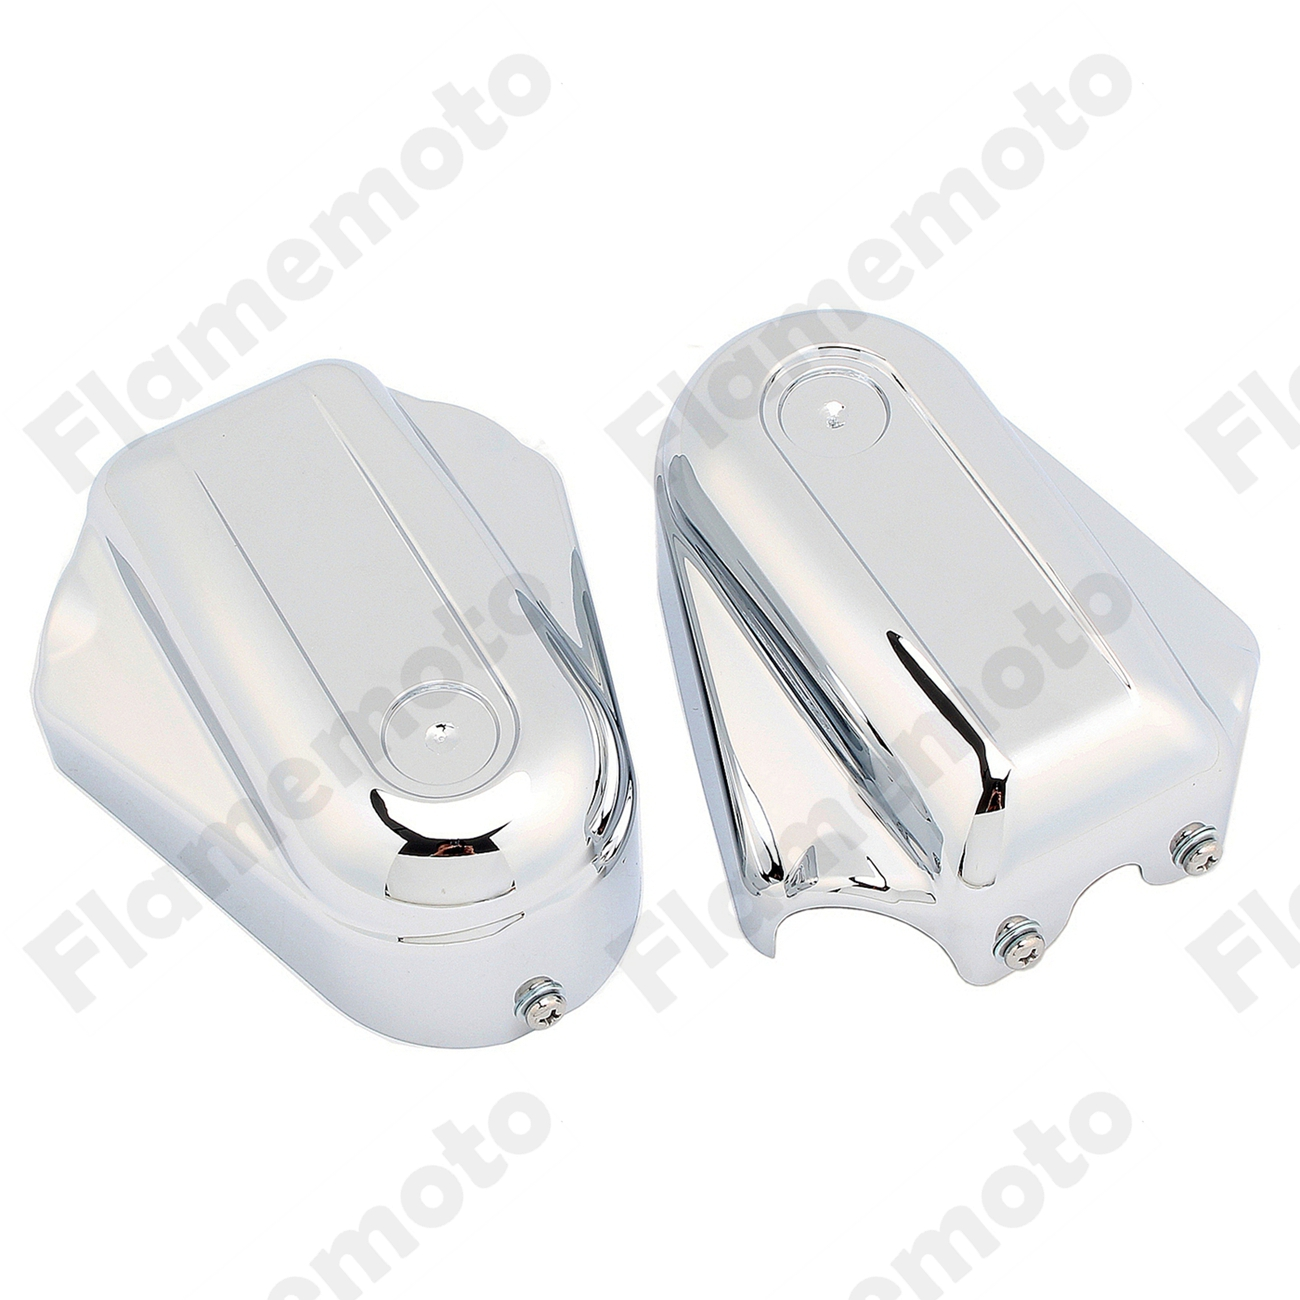 Chrome Motorcycle Bar Shield Rear Axle Covers Swingarm Cap For For Harley Softail Deluxe FLSTN FXSTB 2008 2009 2010 2011-2017 минипивоварня beermachine deluxe 2008